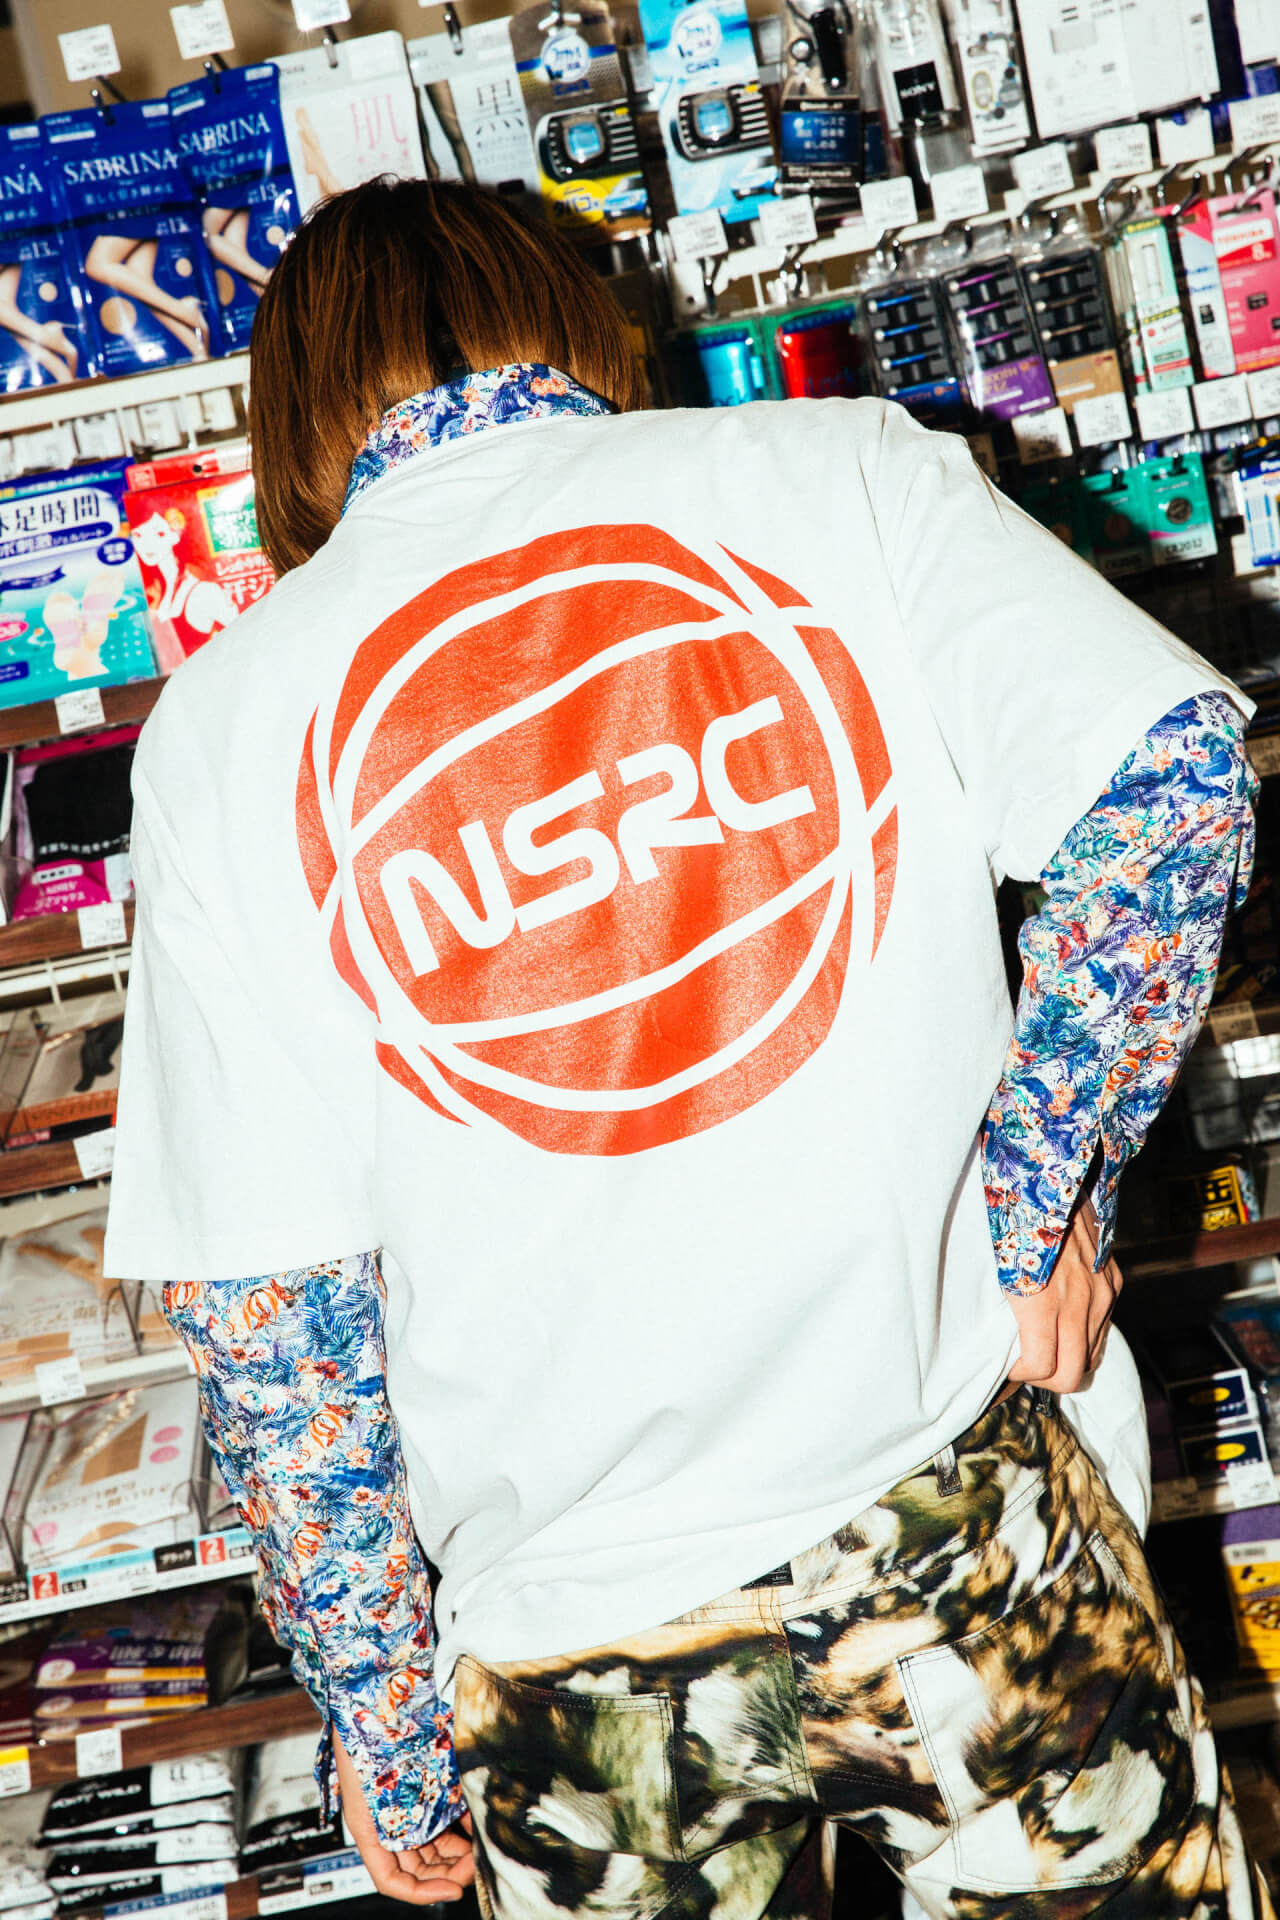 NSRC POP UP EVENT Supported by Qetic music1908228-nsrc-11